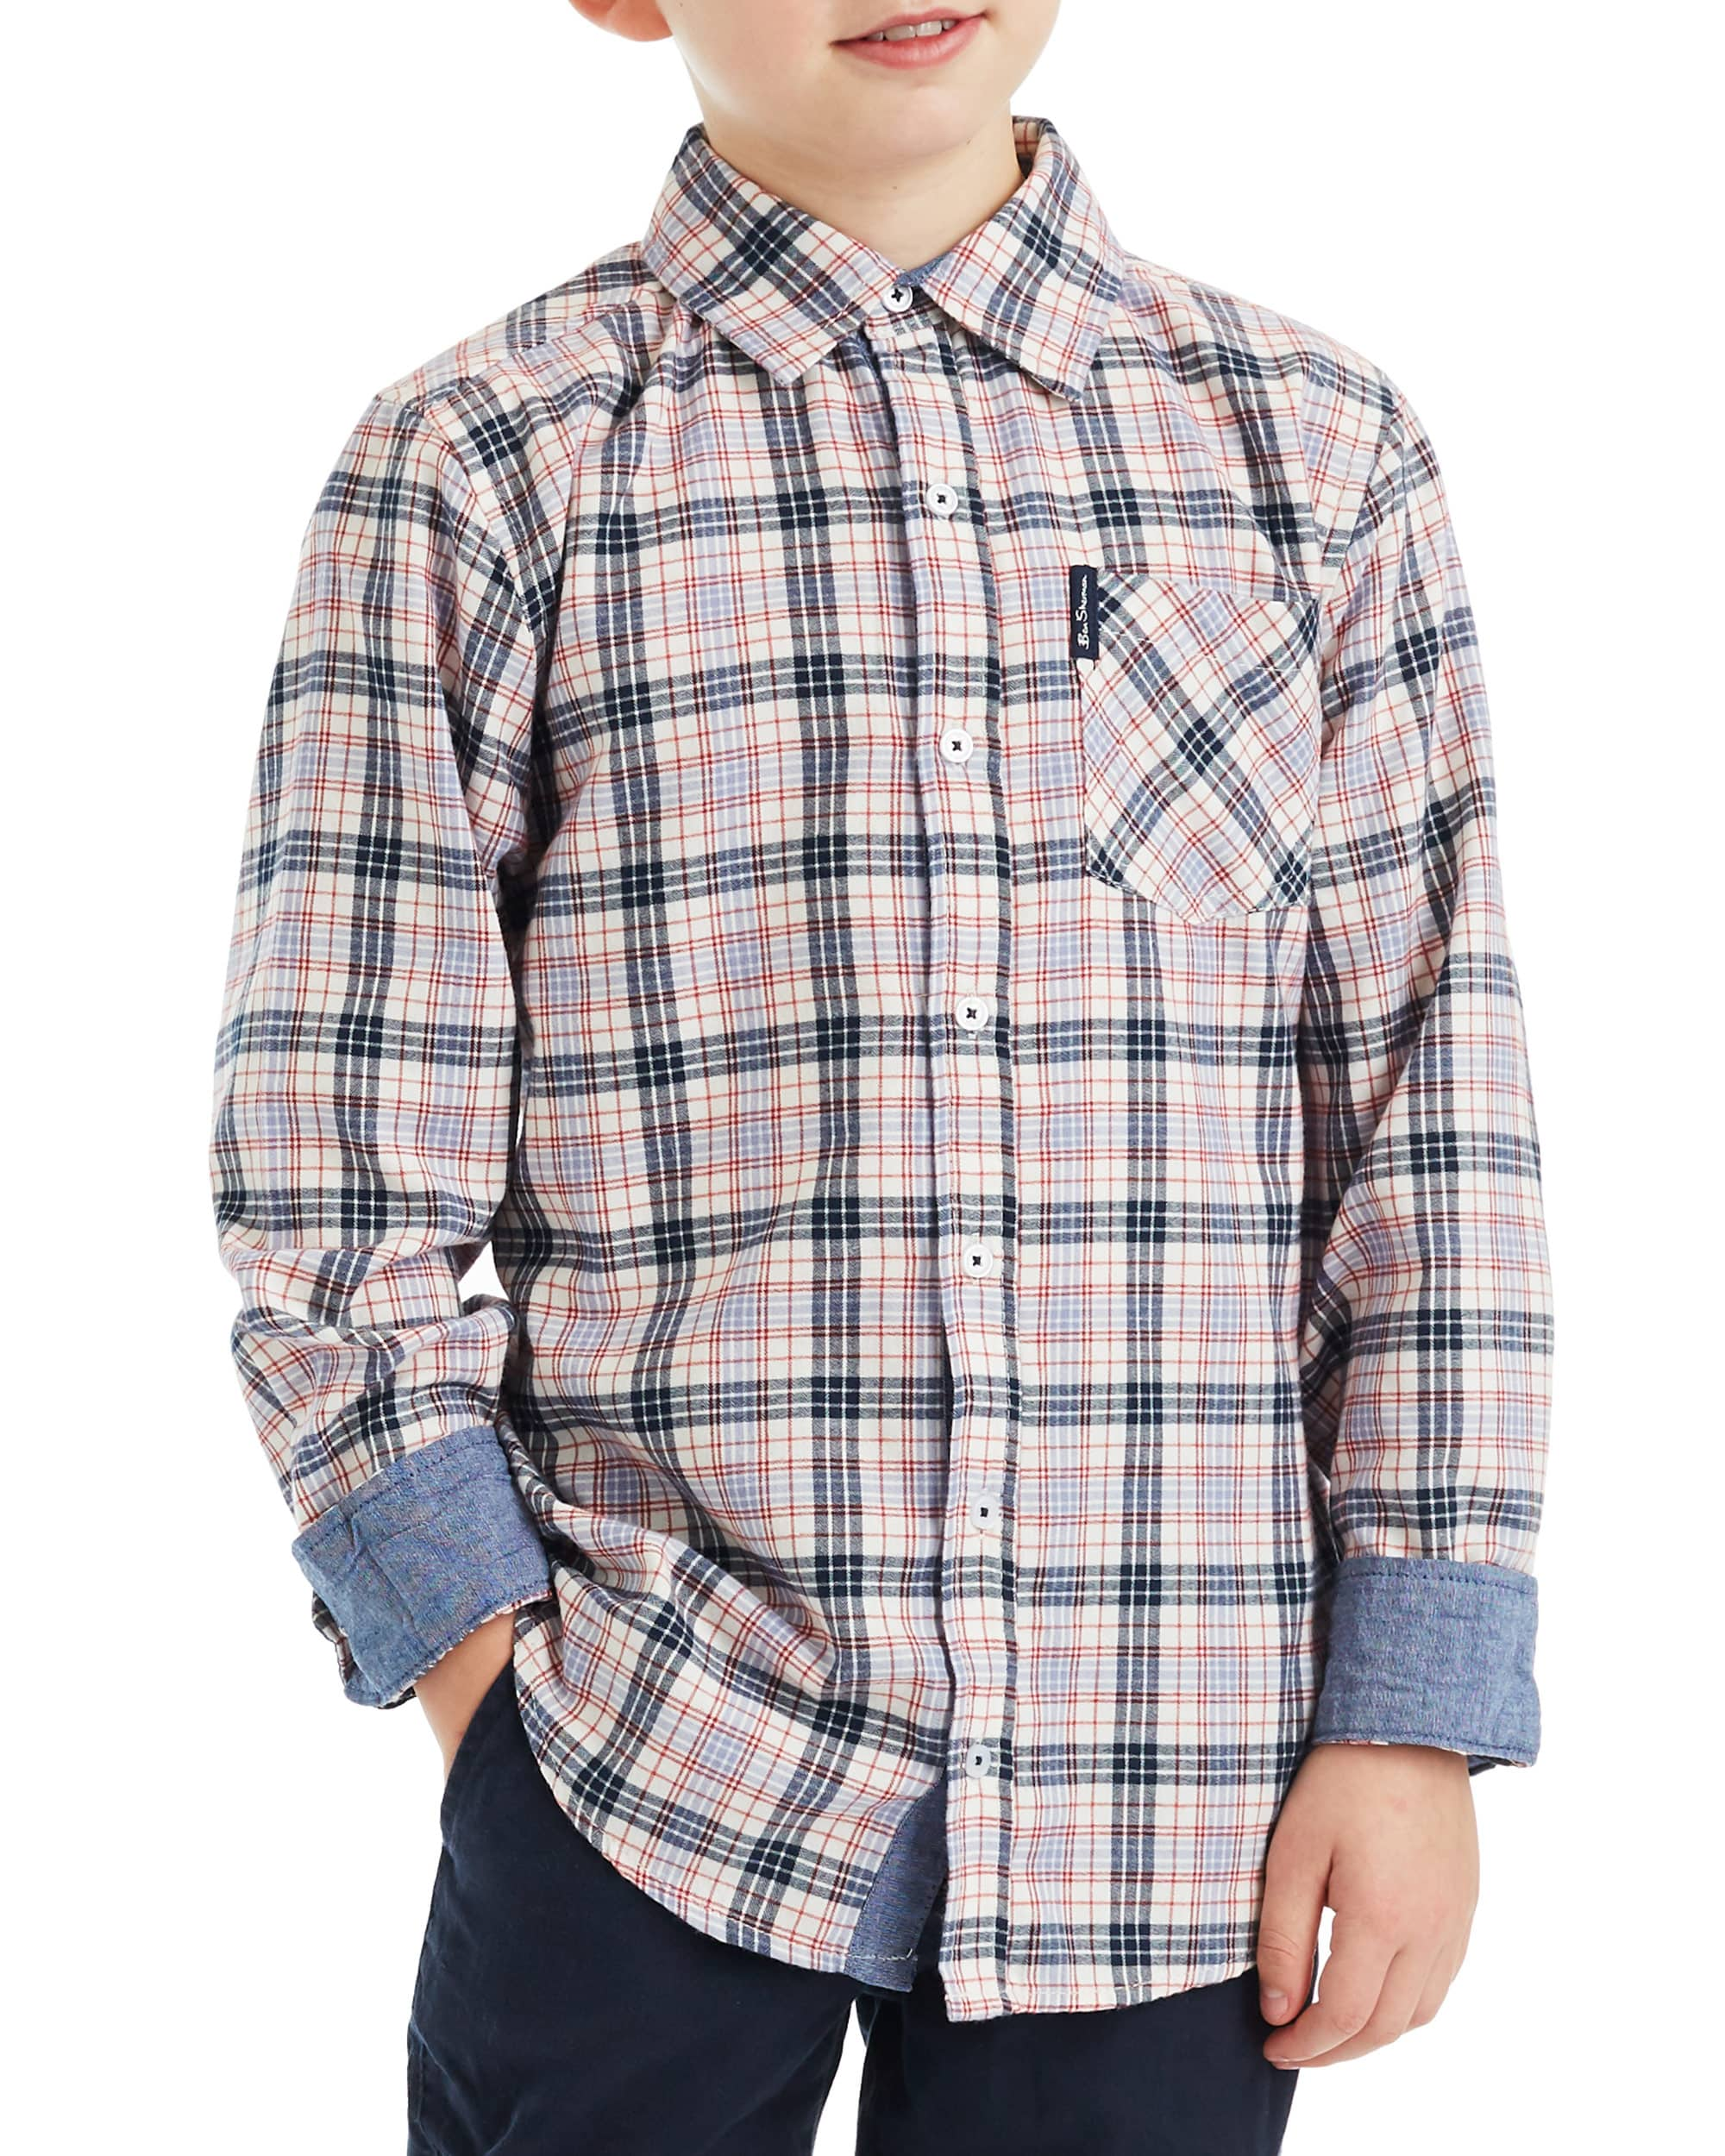 Boys' White/Blue/Red Long-Sleeve Plaid Button-Down Shirt (Sizes 8-18)